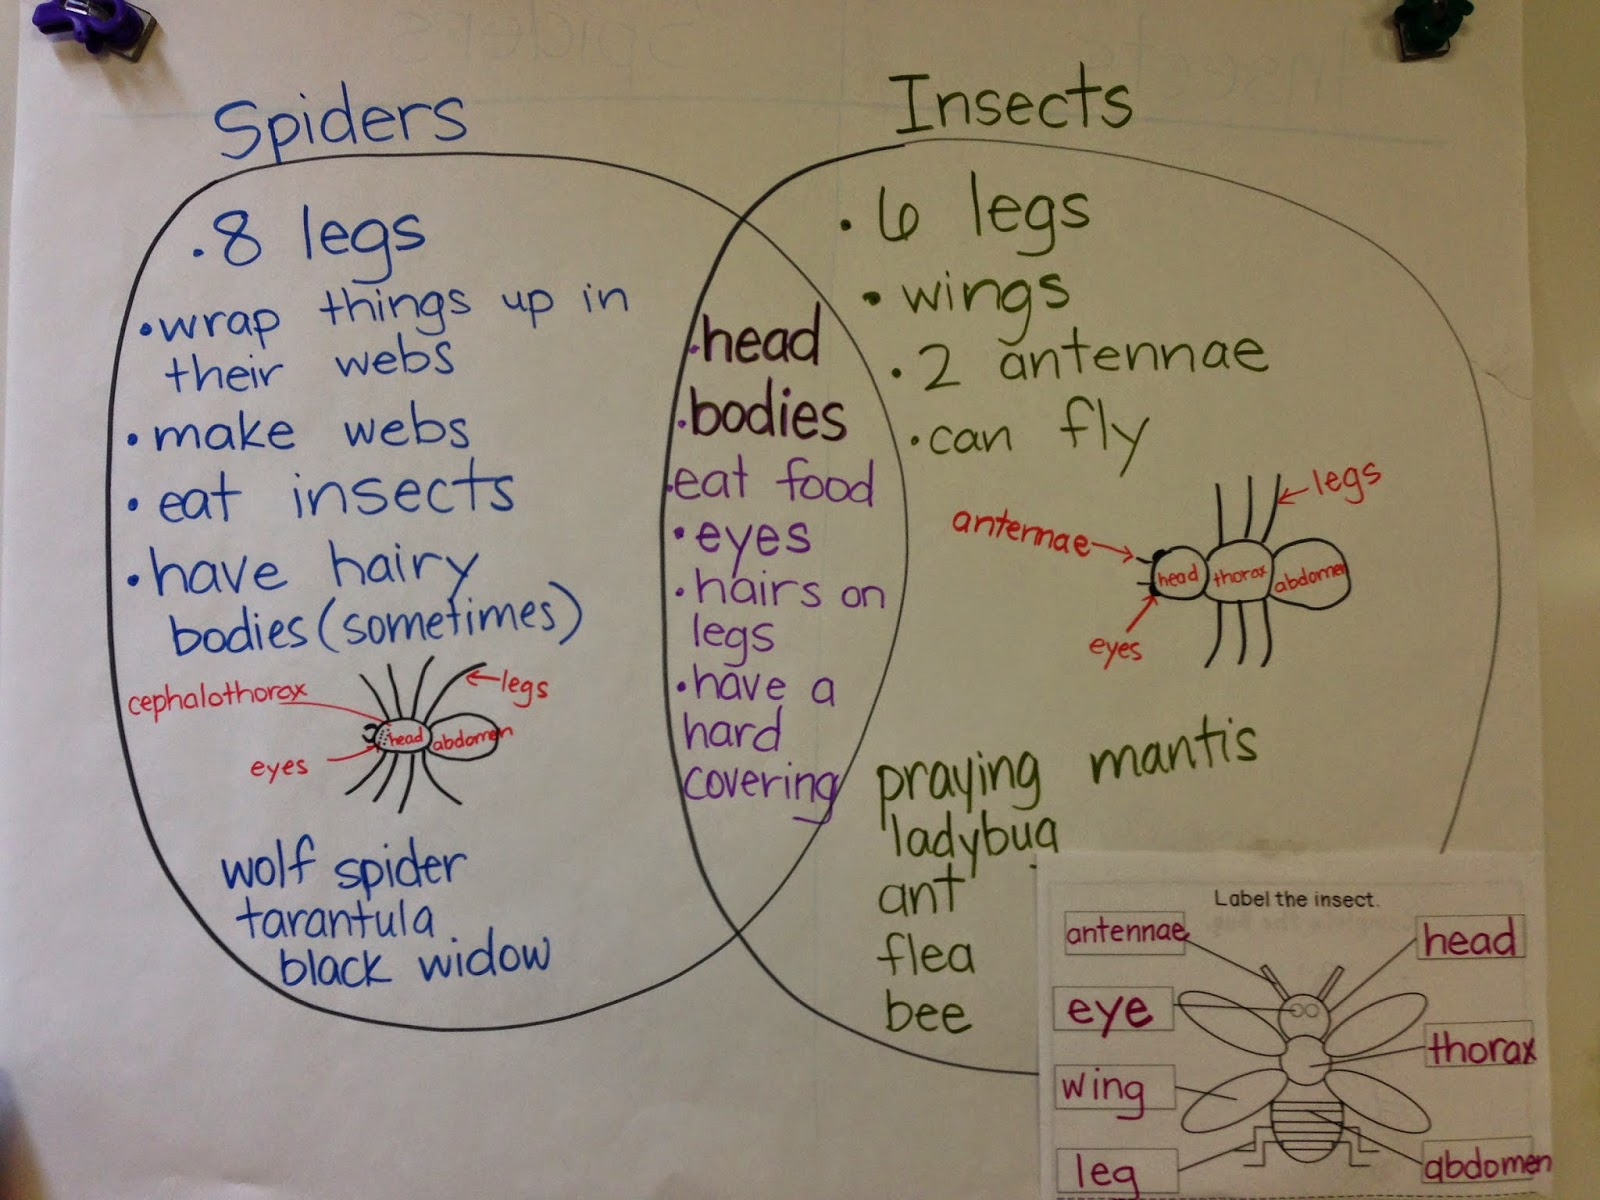 Venn diagram on bugs online schematic diagram tons of fun with k and 1 playing with insects and spiders rh tonsoffunwithkand1 blogspot com venn diagram on day of the dead and halloween venn diagram ccuart Image collections